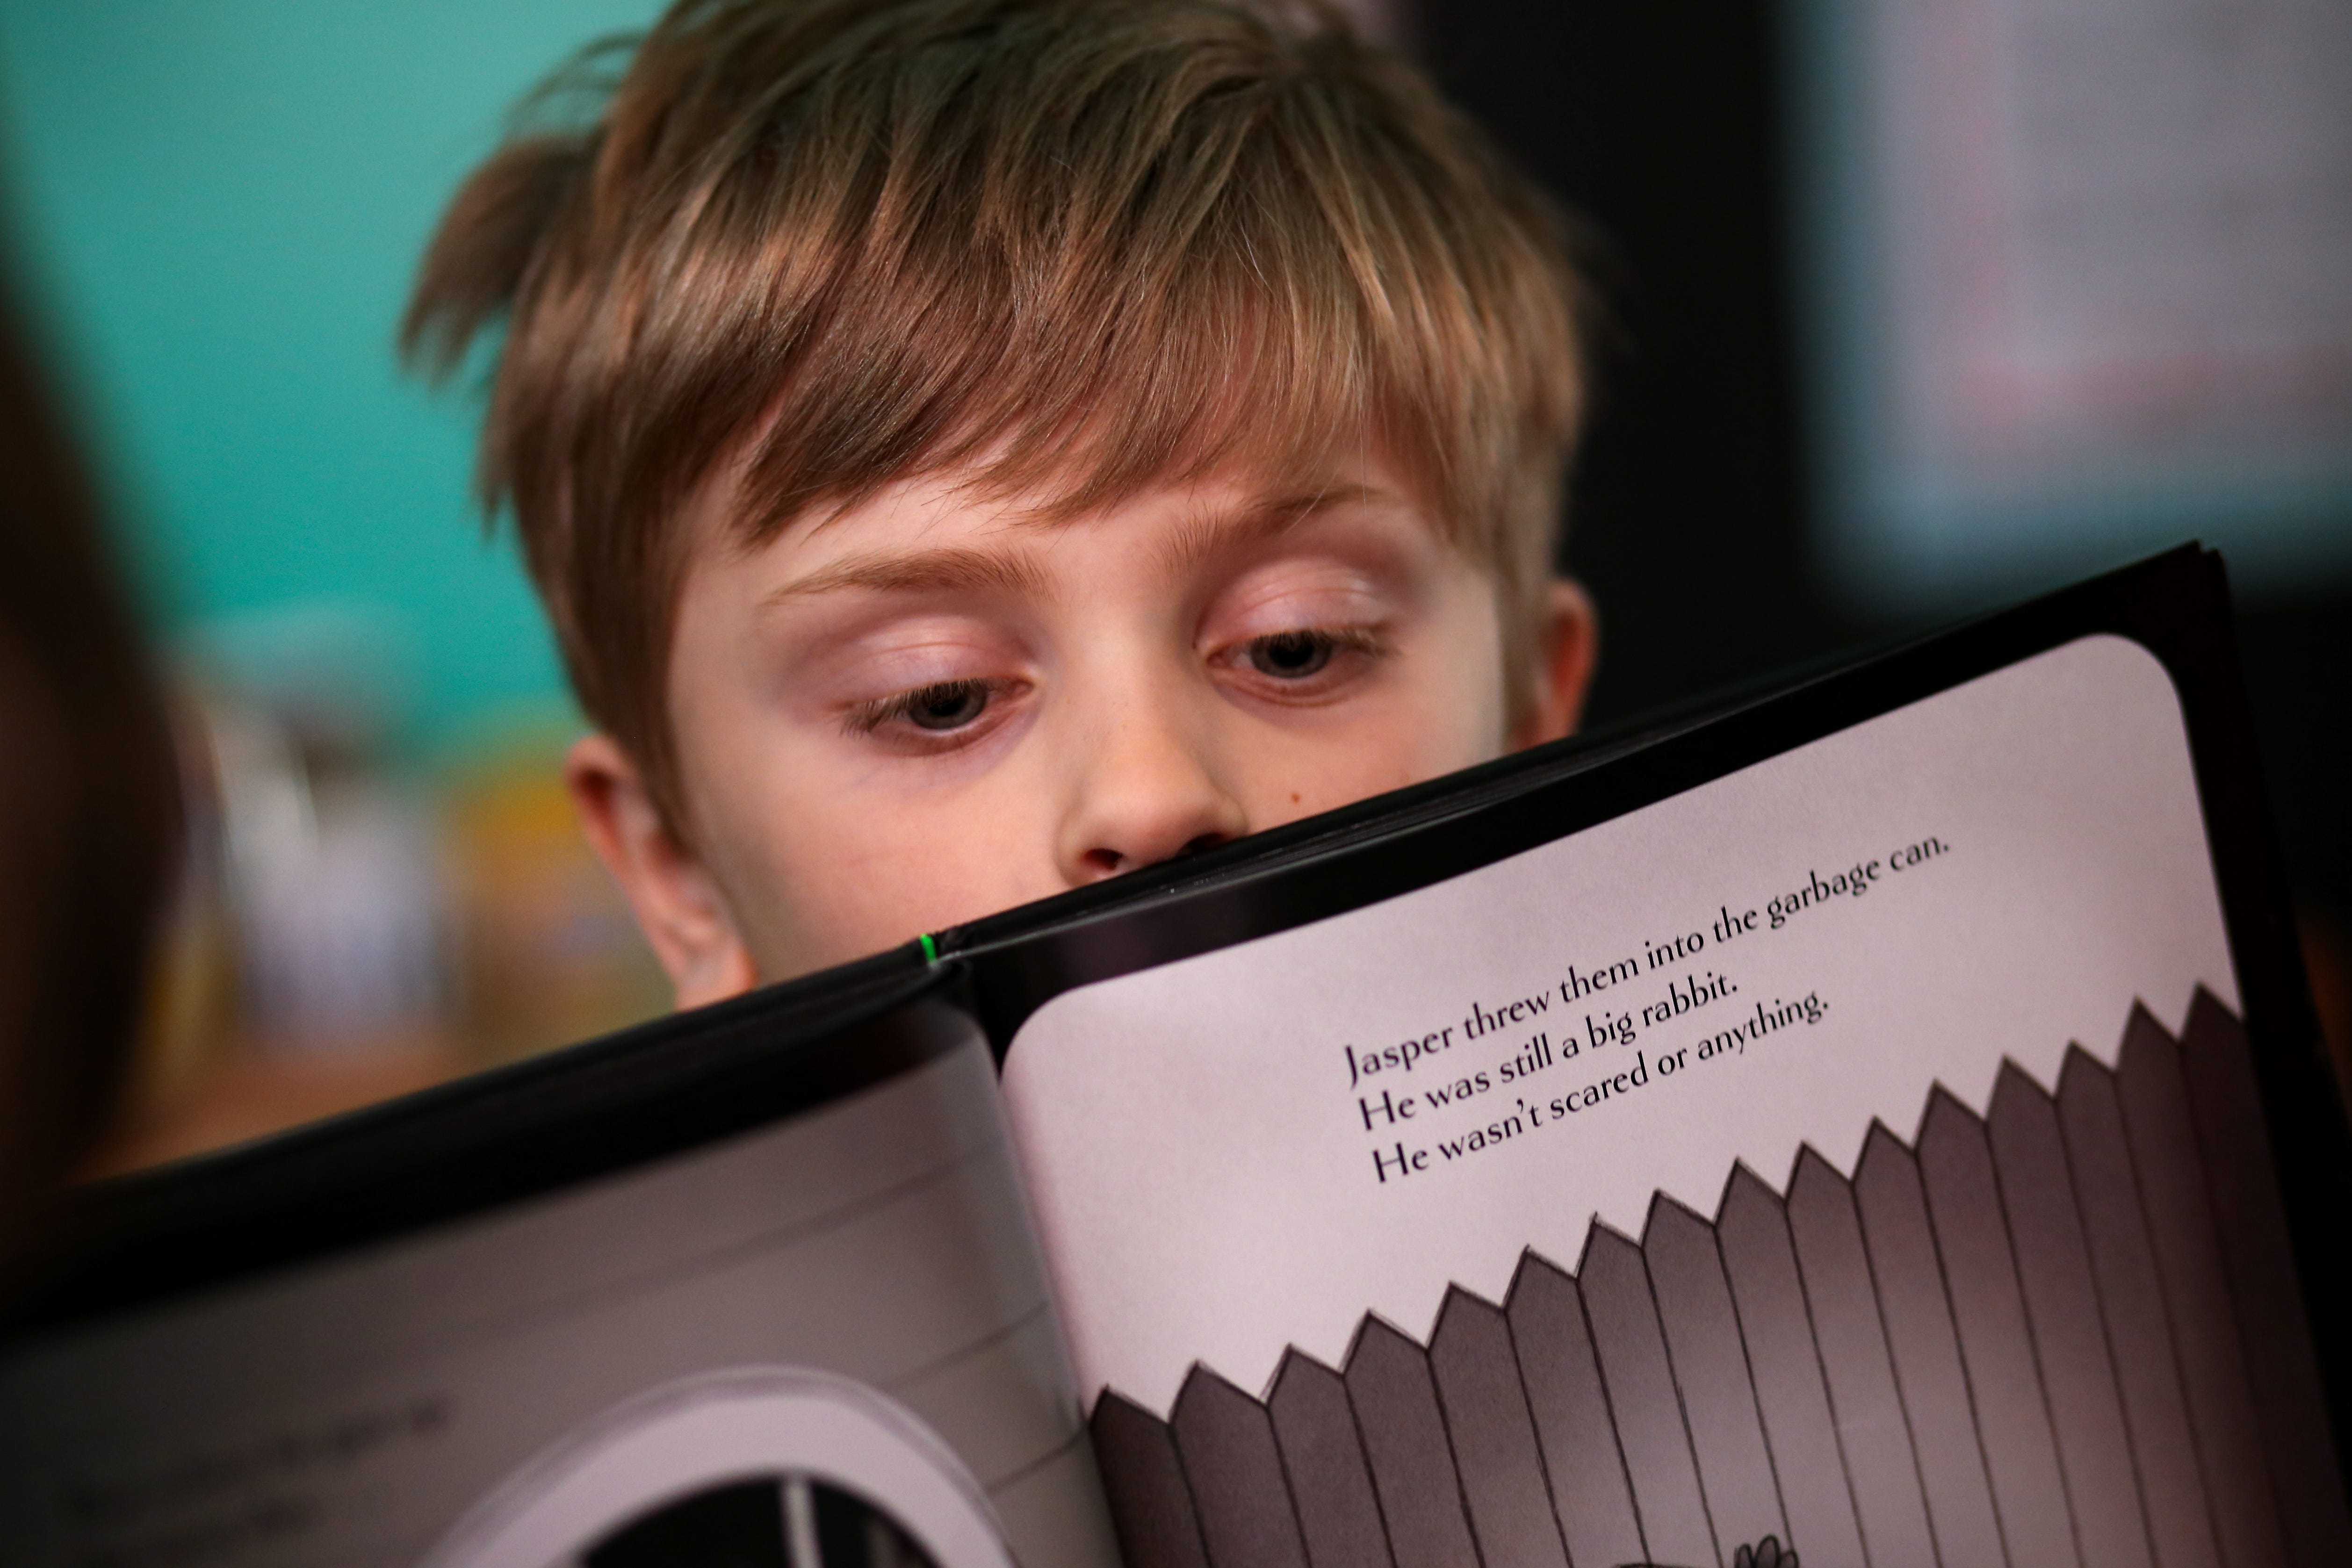 Tommy Minelli, 6, peers over the edge of a book during a video conference call, Thursday, April 2, 2020, in Cincinnati's Northside neighborhood. About a dozen of his mother's colleagues get together and rotate teaching their kids a lesson from a range of subjects.